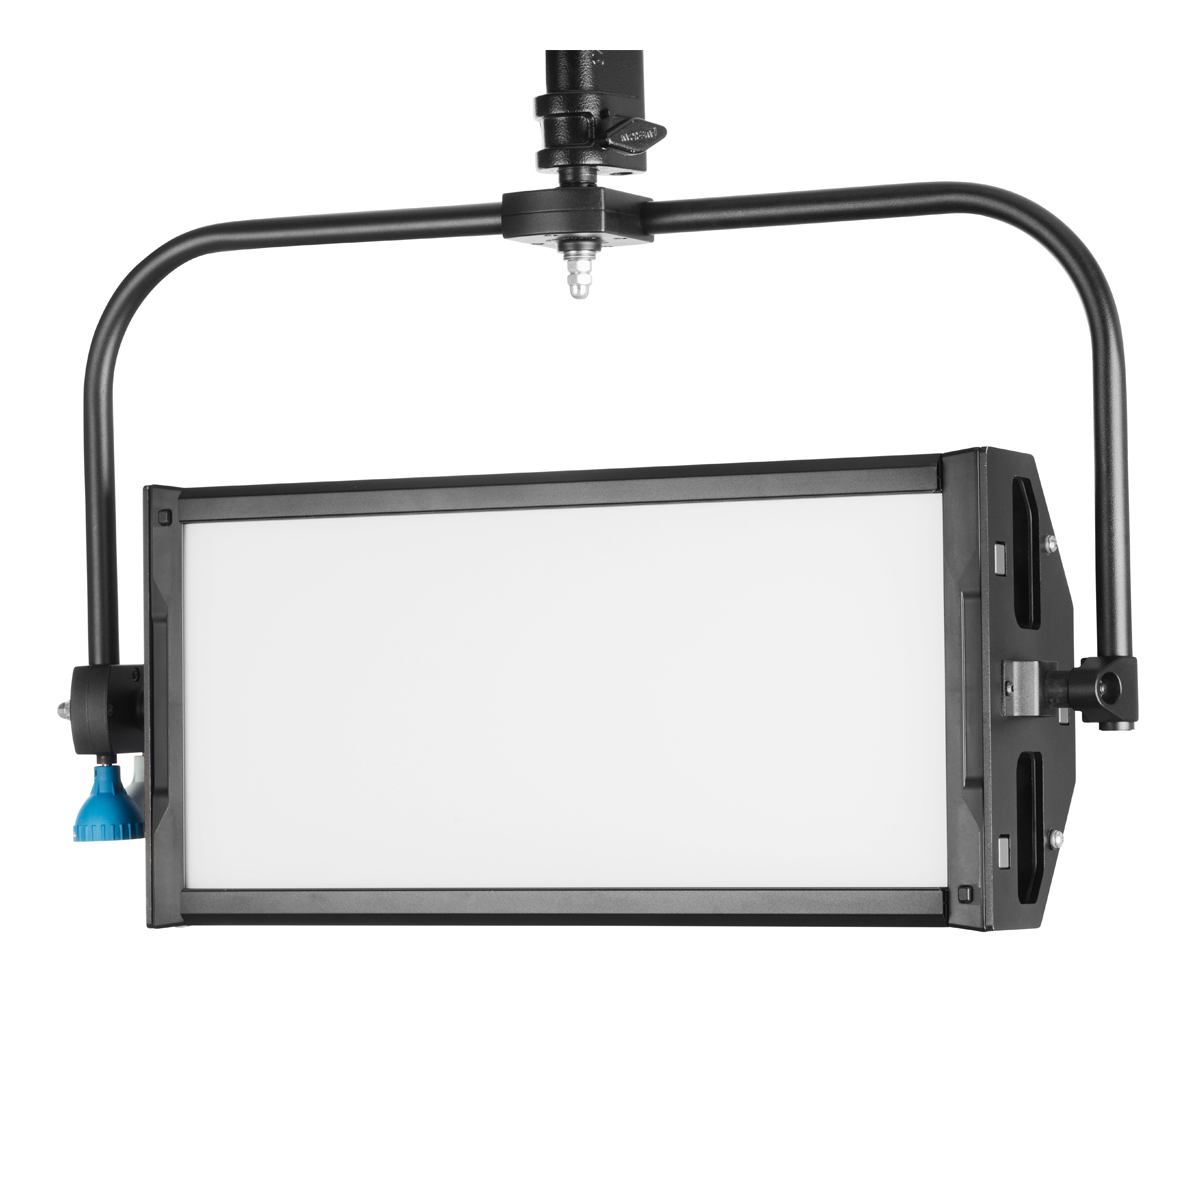 Gemini 2x1 Soft RGBWW LED Panel (Pole-Operated Yoke, UK Power Cable)